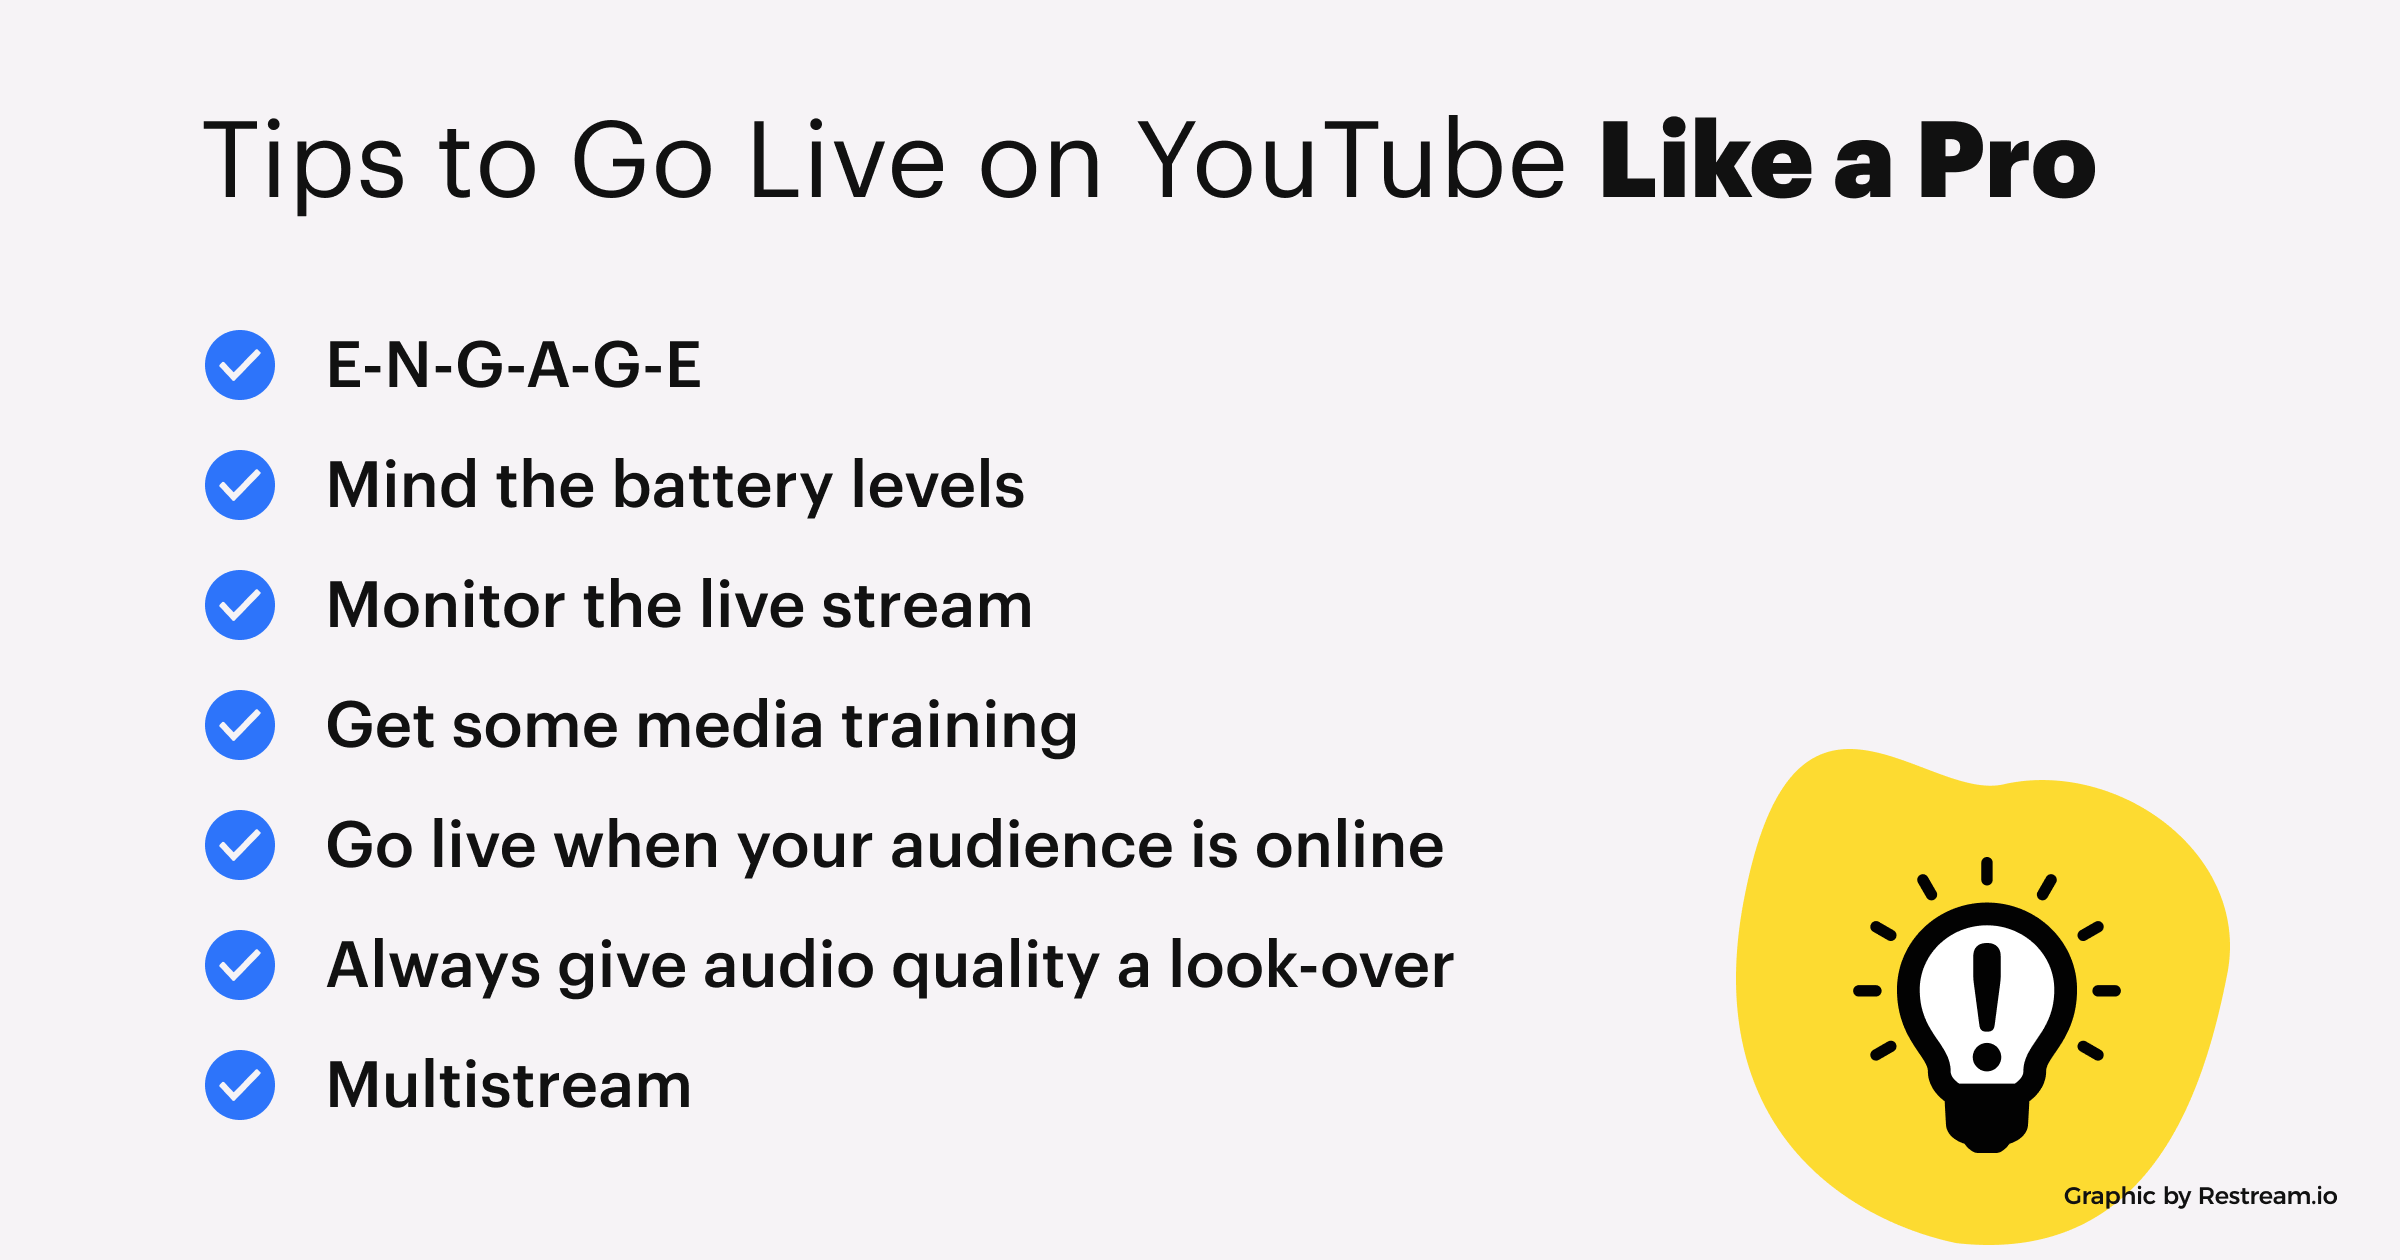 Tips to Go Live to YouTube Like a Pro